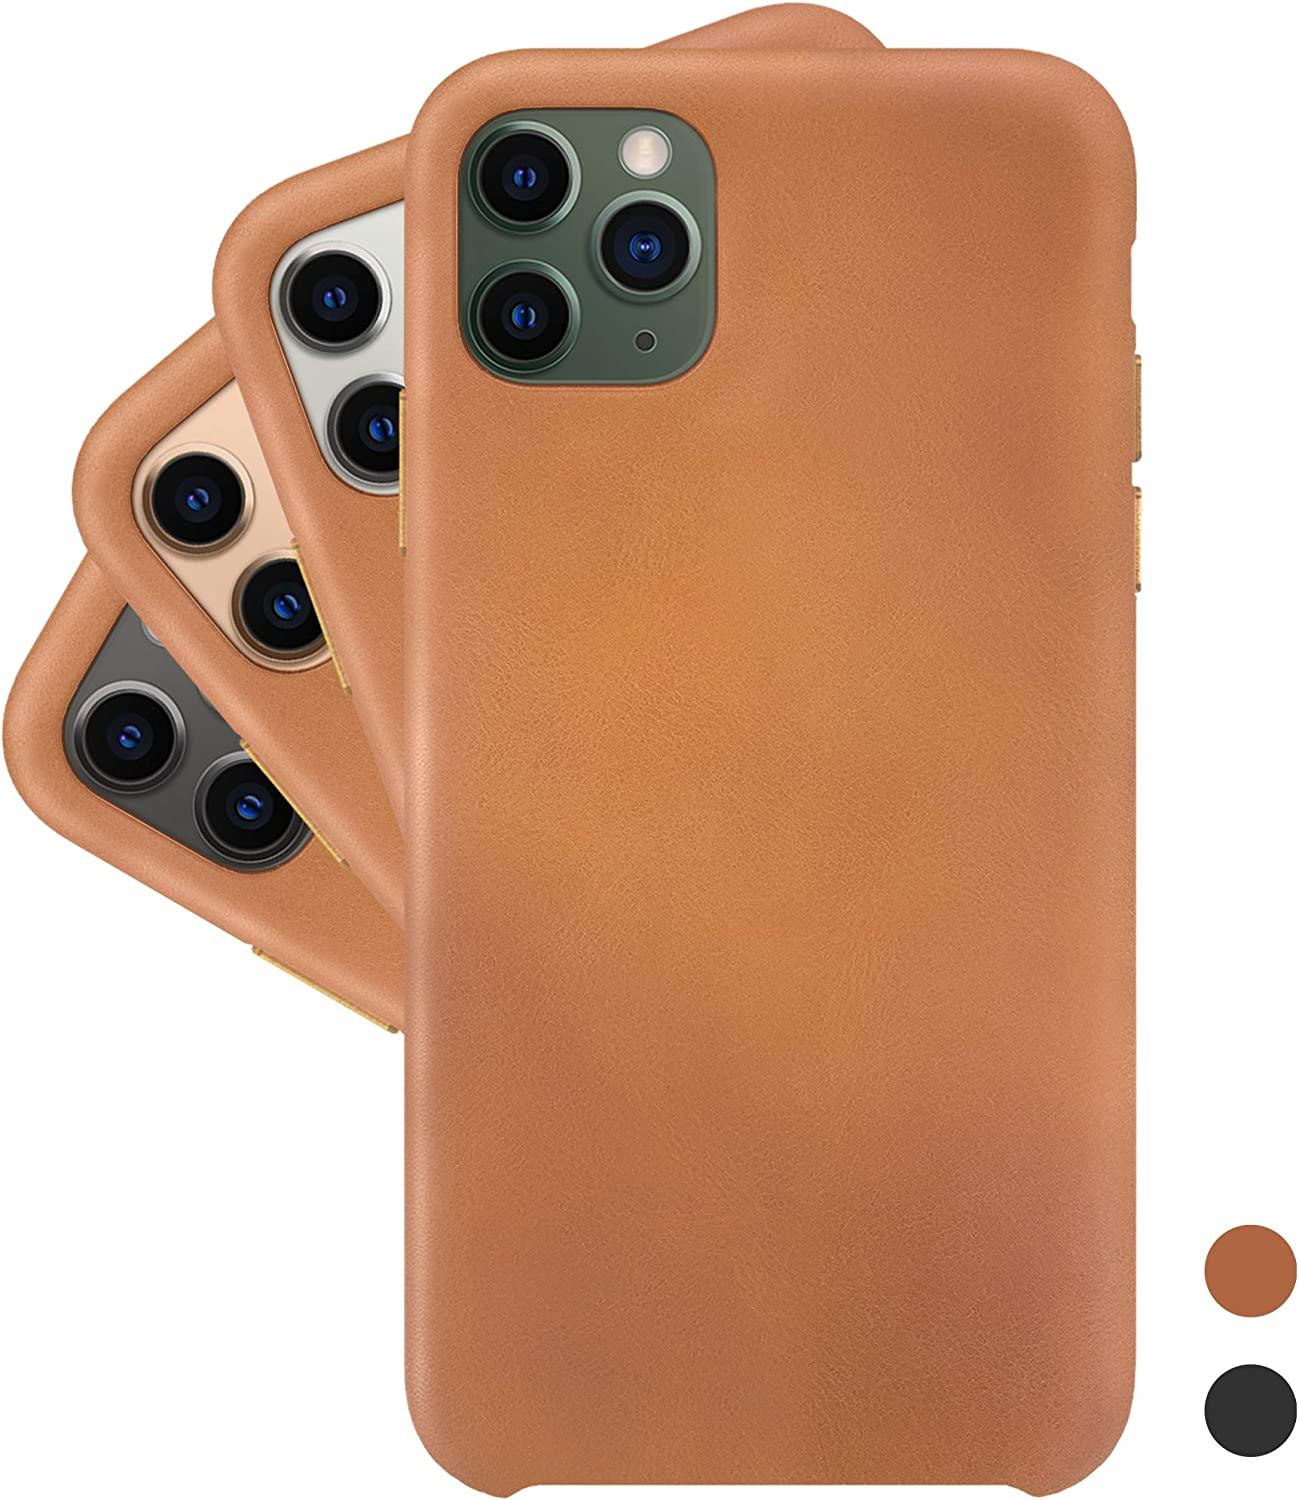 LONLI Basic | Ultra Soft and Smooth Vegan Leather Case - for Apple iPhone 11 Pro Max - (6.5 inch, Caramel)